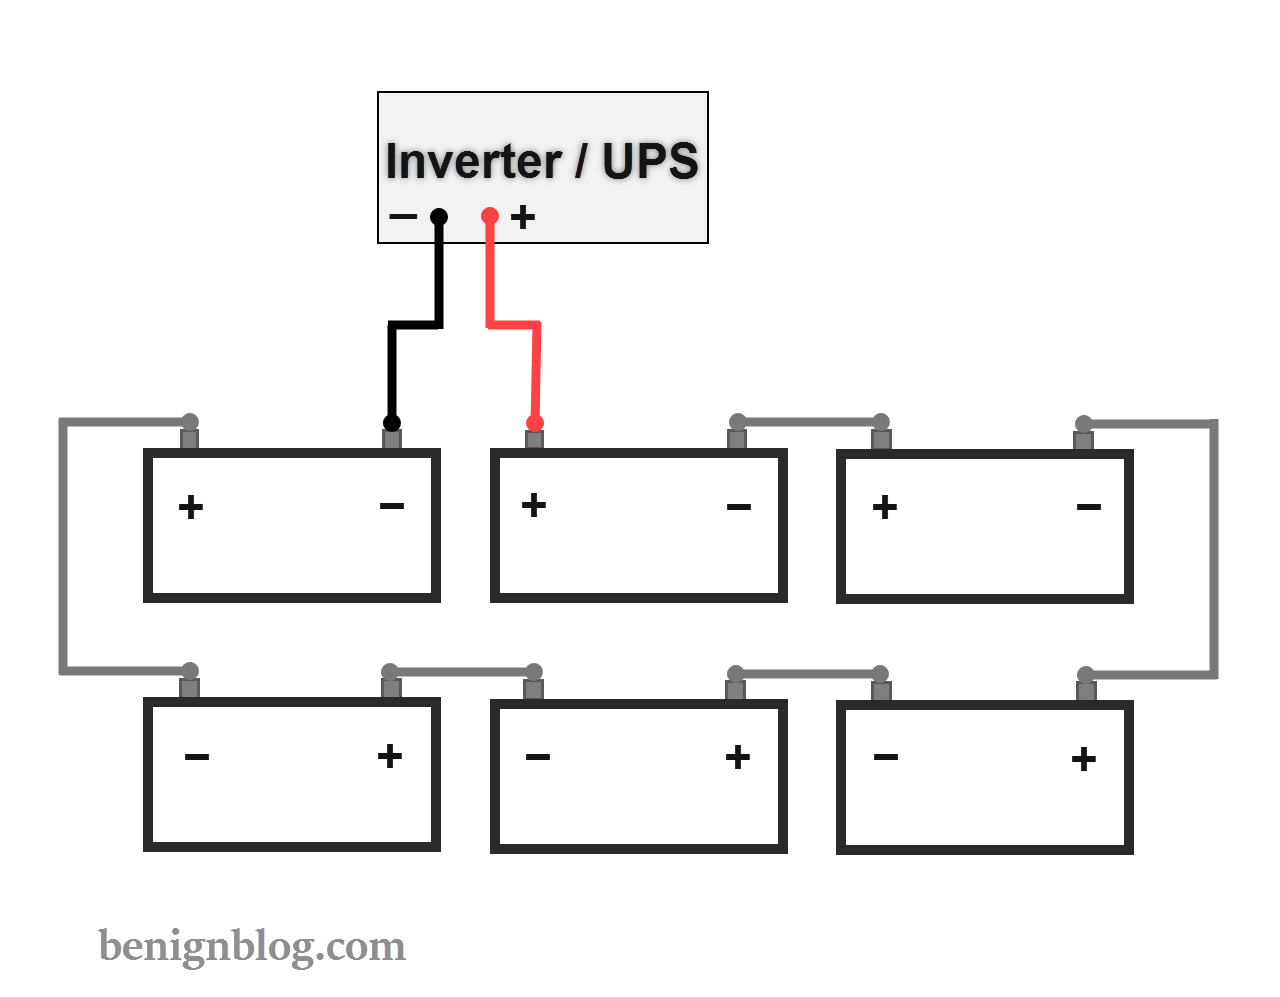 how to connect batteries in series with power inverter or ups wiring diagram for 2 12 volt batteries in series wiring diagram for batteries in series [ 1280 x 997 Pixel ]